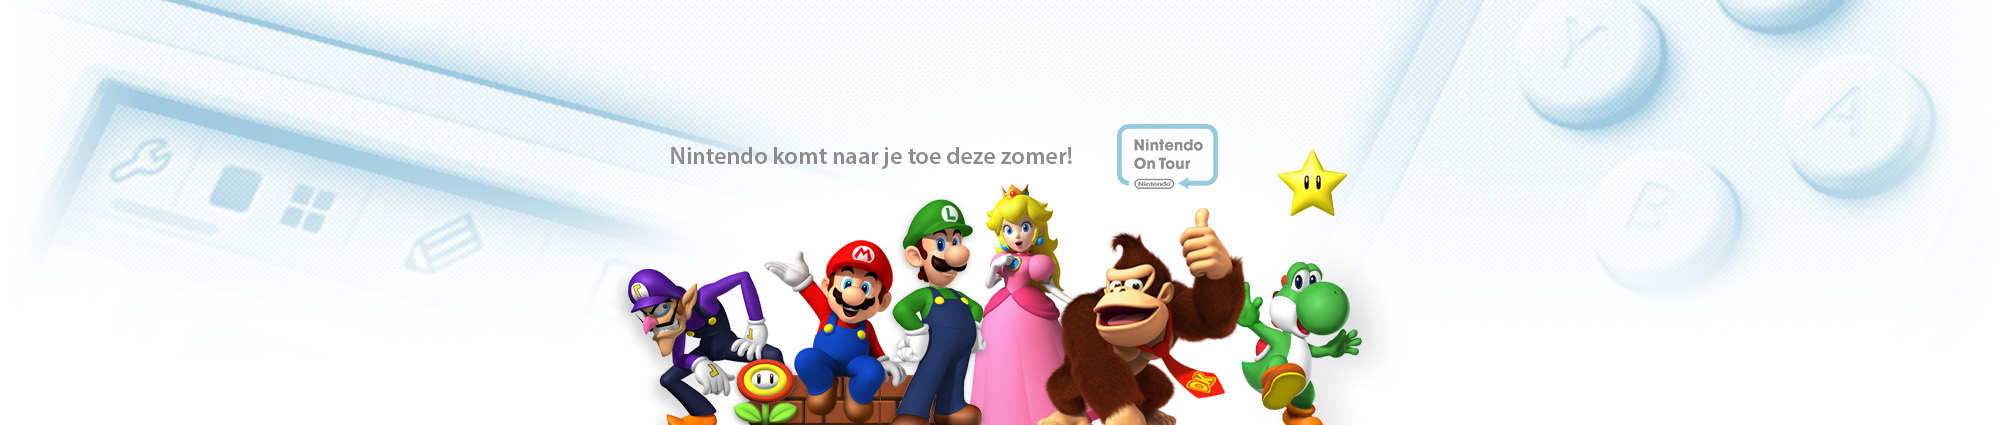 Nintendo on Tour 2014